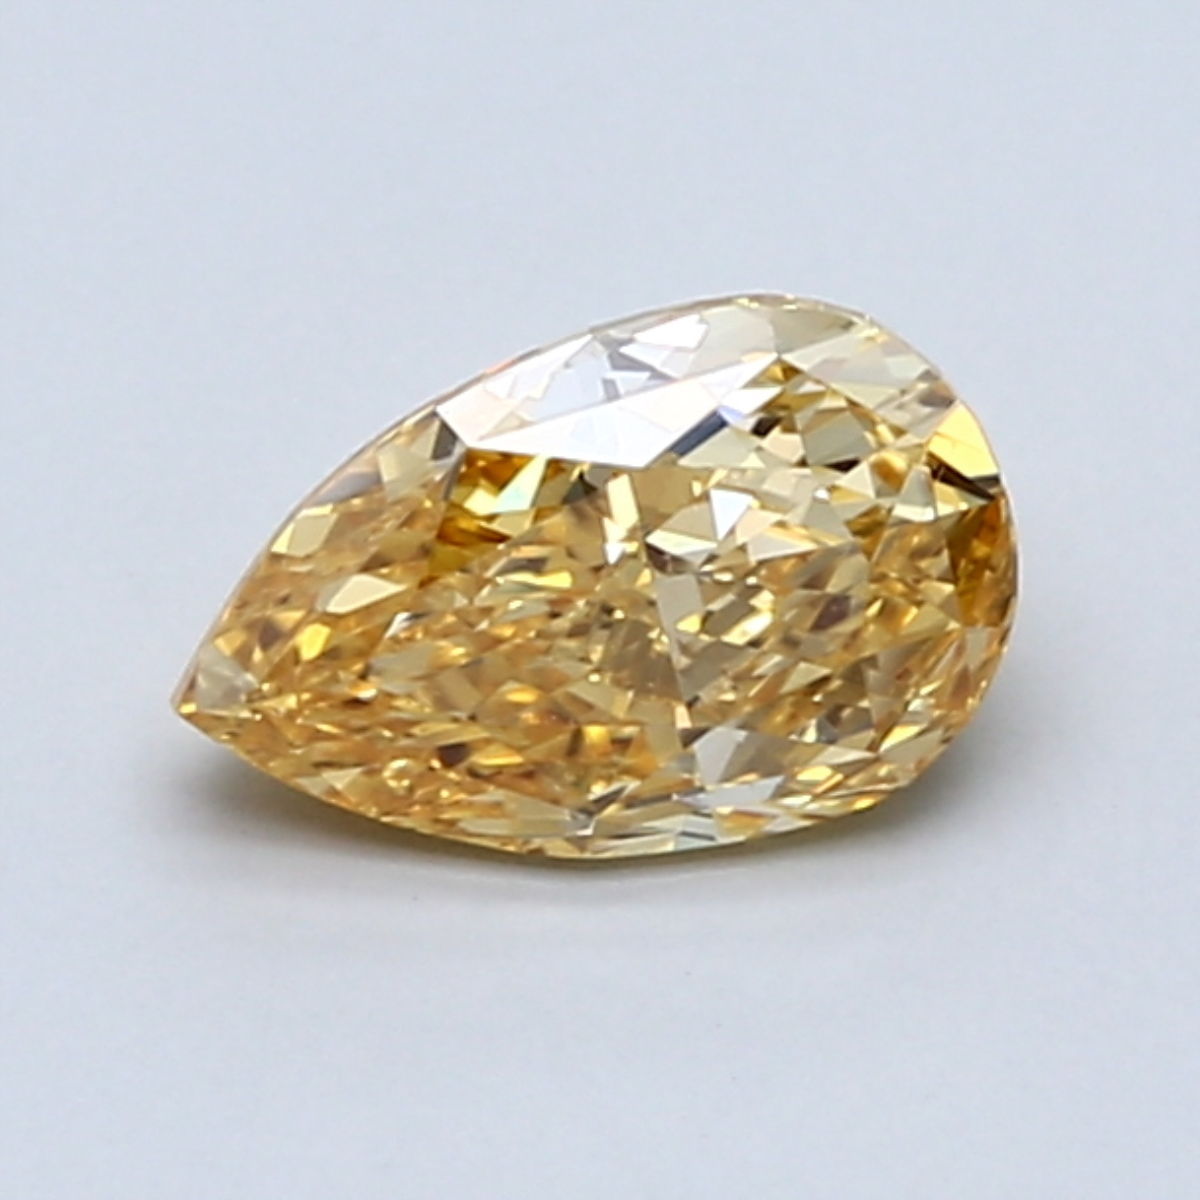 0.83-Carat Intense Yellow-orange Pear Shaped Diamond